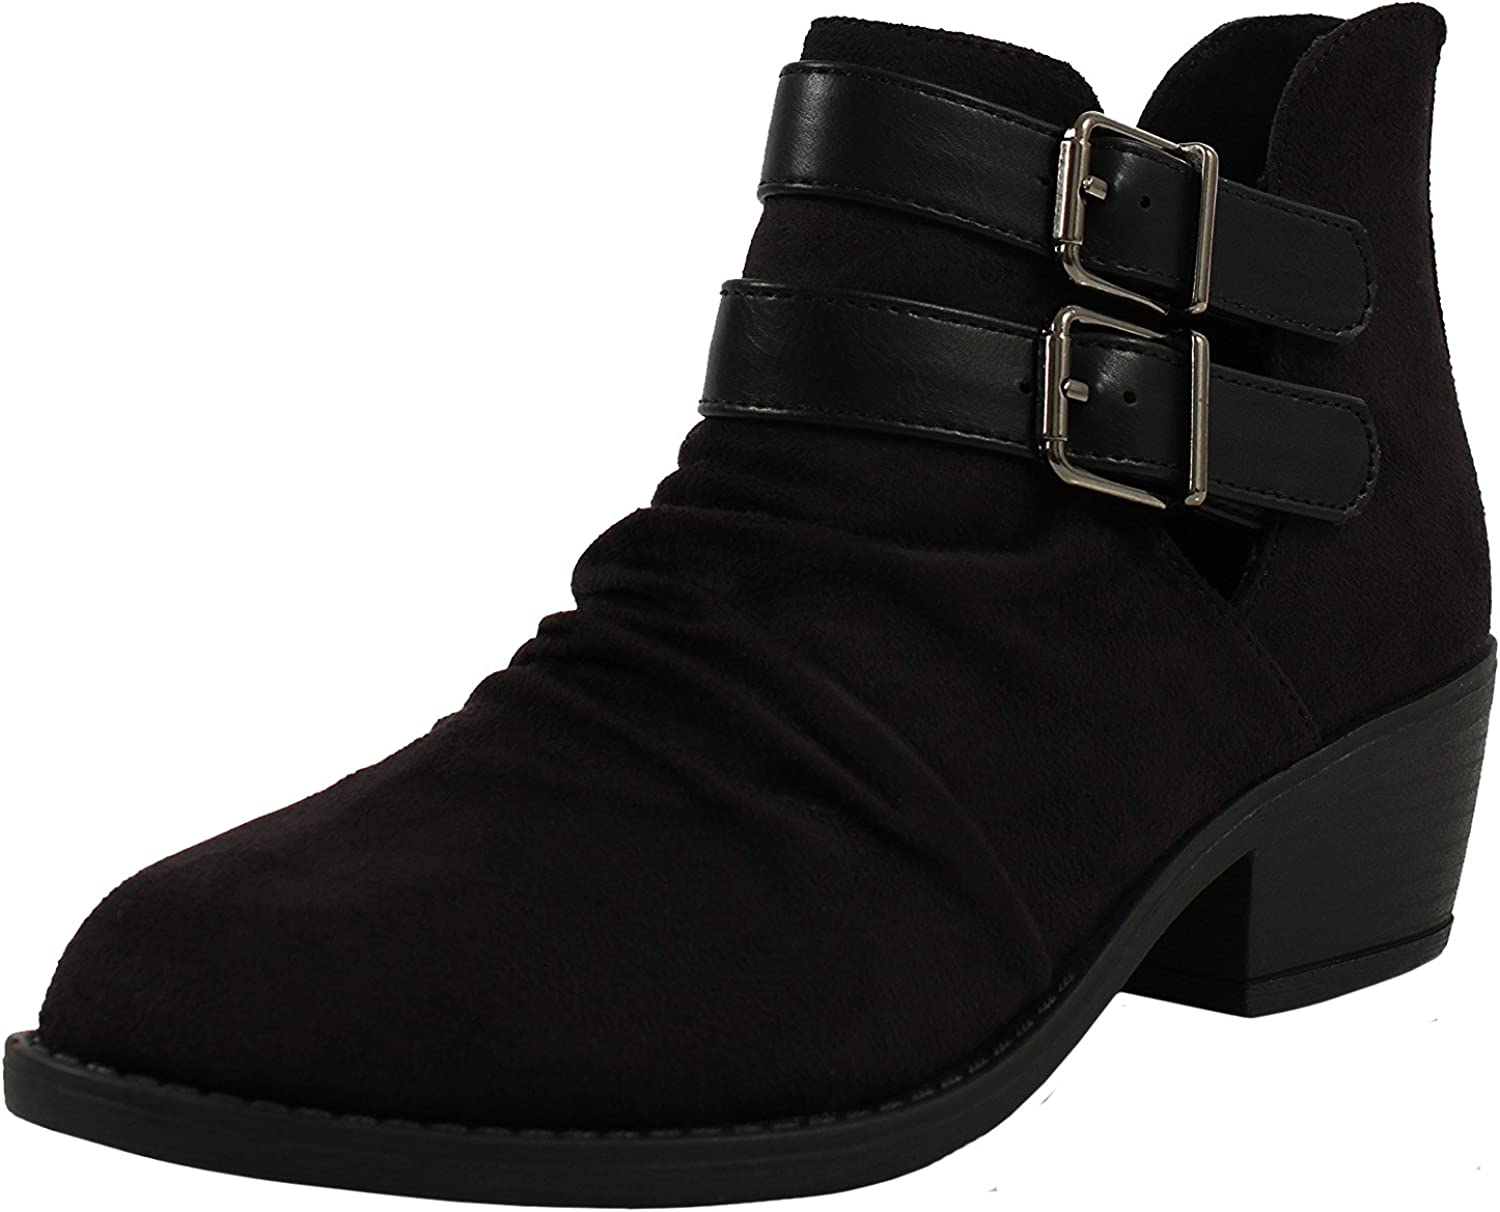 Soda Women's Verity Ruched Cut Out Side Double Buckle Side Stacked Heel Ankle Bootie